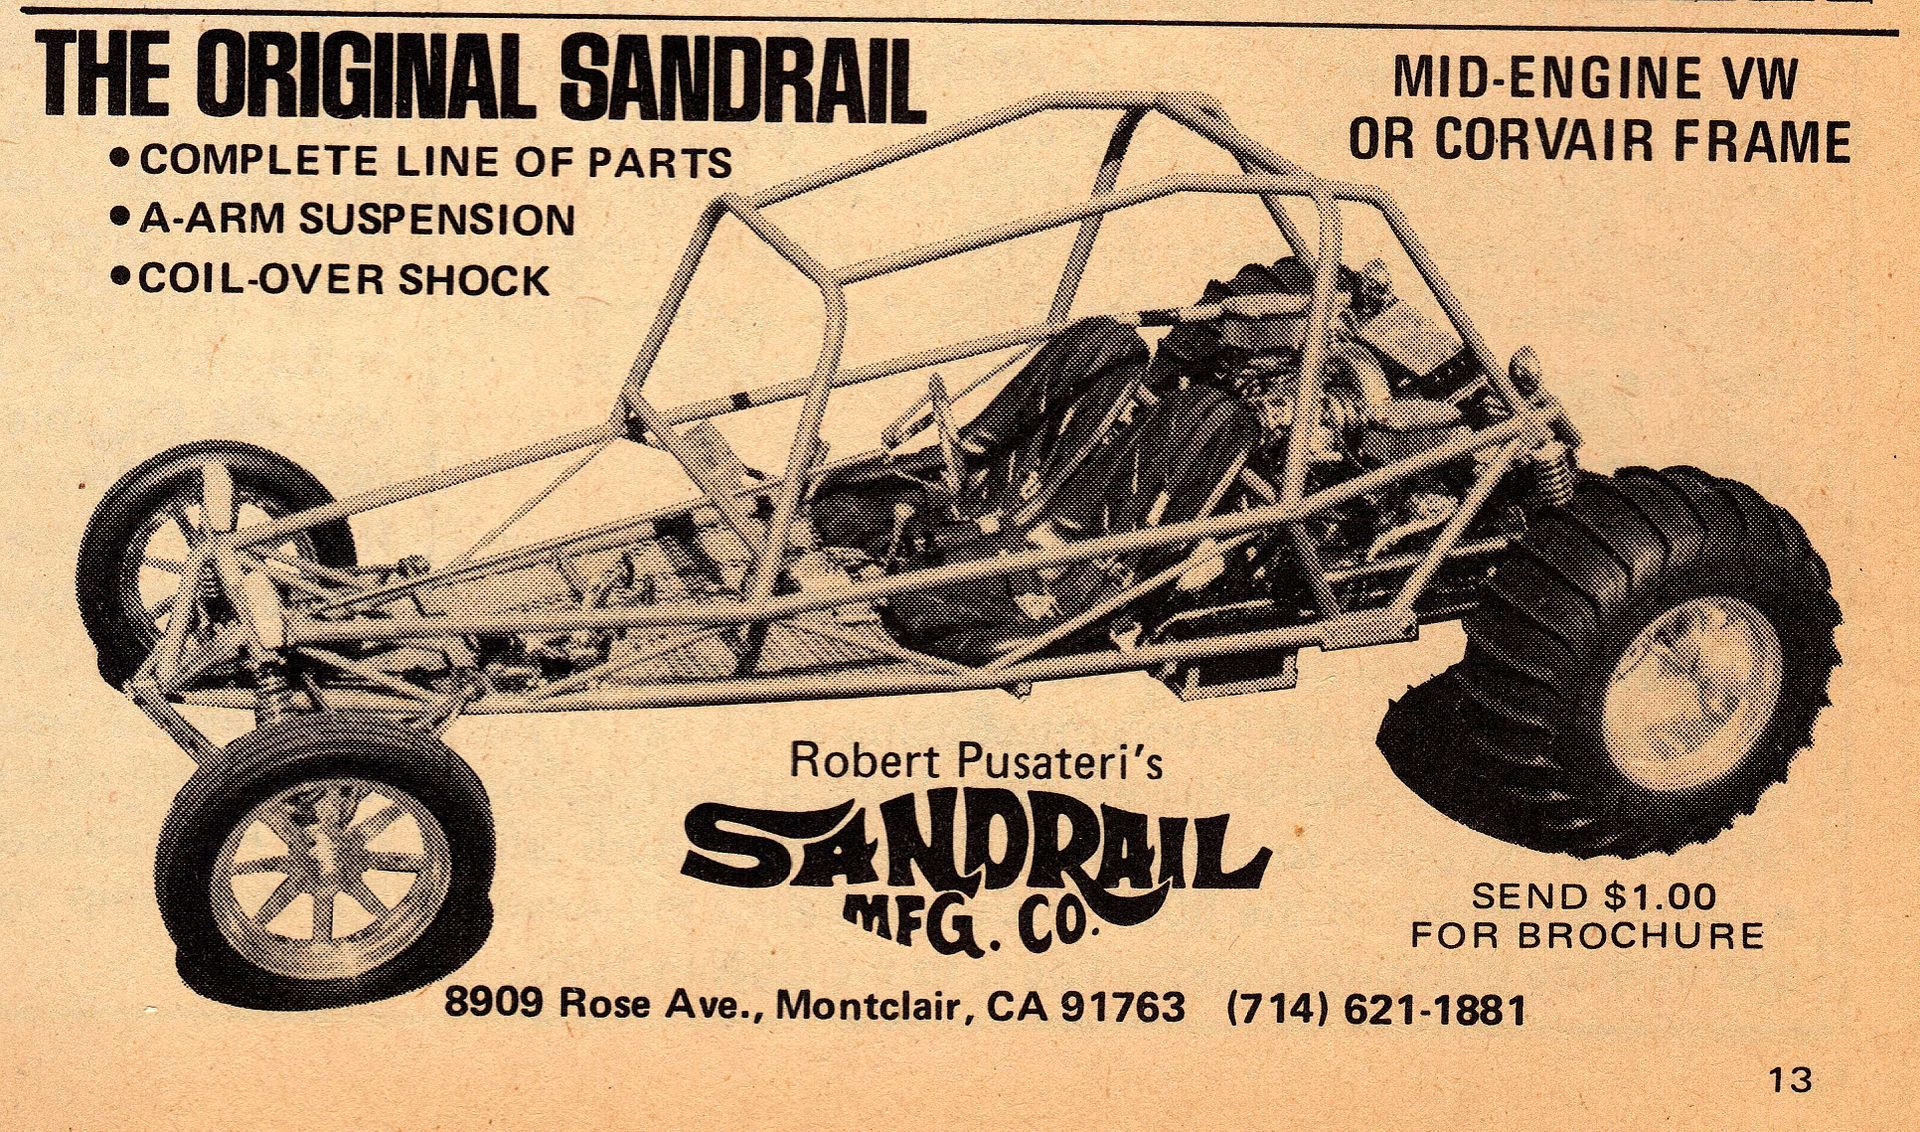 Sandrail_frame_advertisement_circa_1978_Sandrail_Mfg_Co